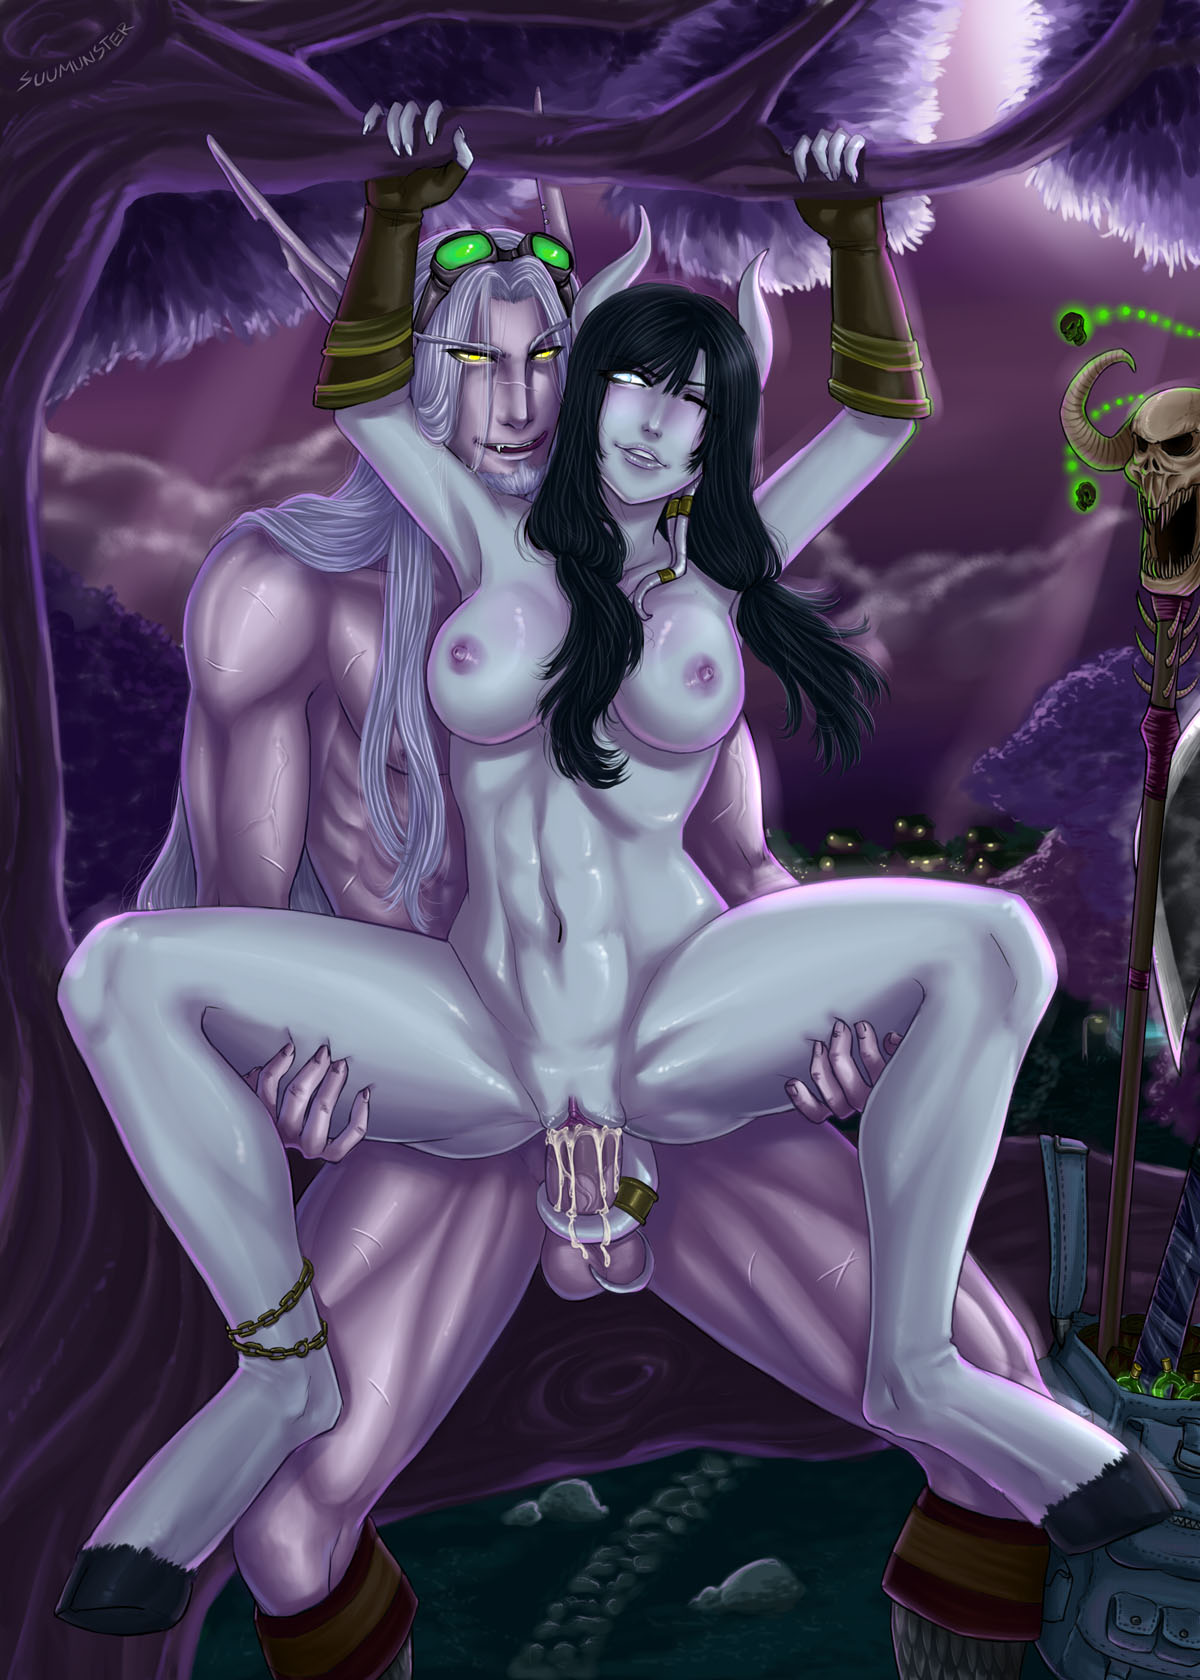 World of warcraft porn night elf and  nude image